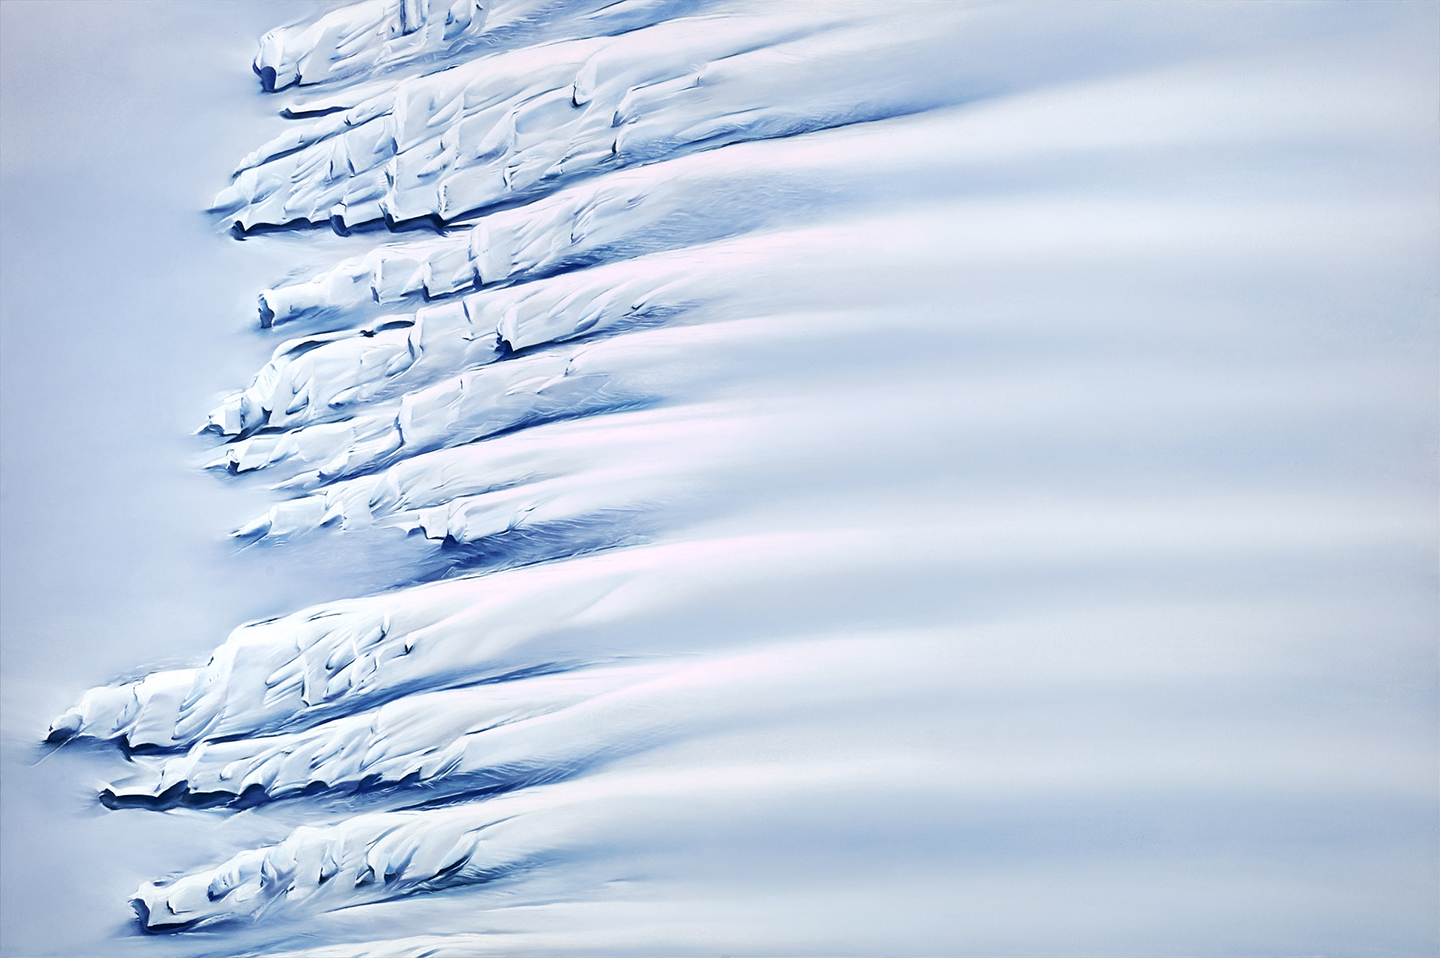 Image: Painting from Zaria Forman of the Getz Ice Shelf in Antarctica viewed from above